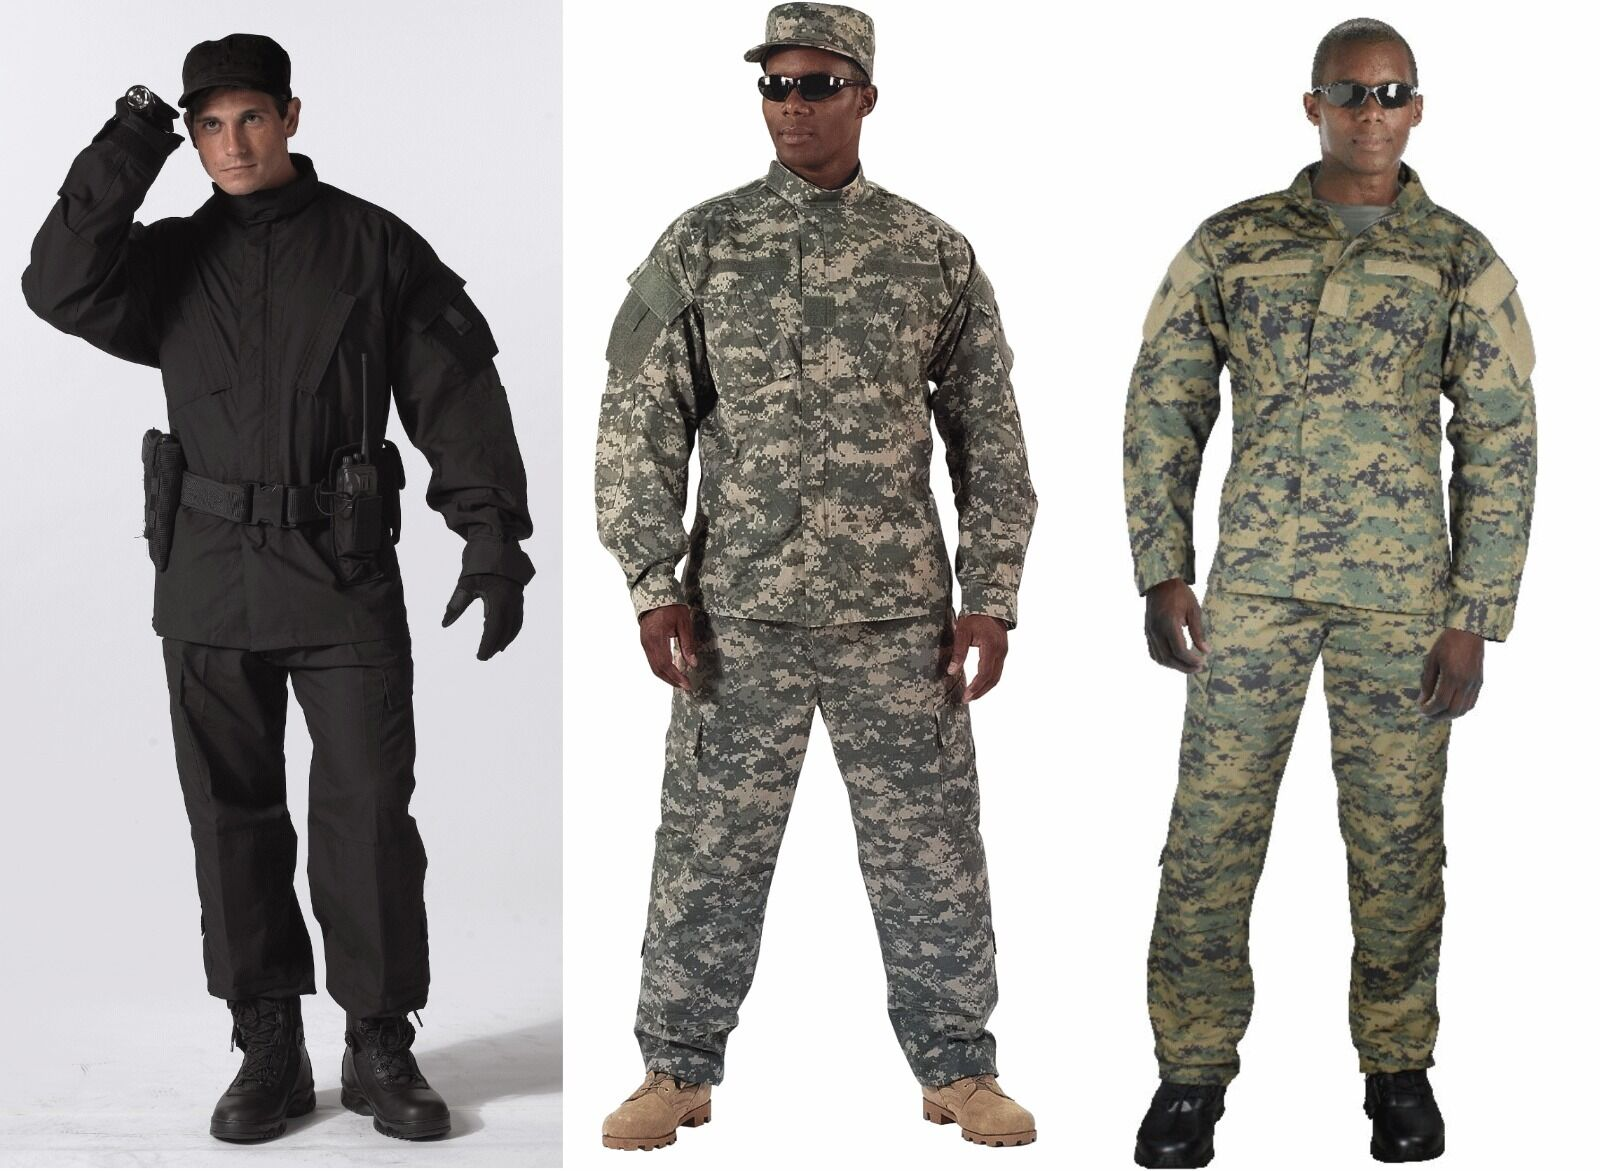 redhco Army Combat Camouflage Rip Stop Uniform Made To Military Specs